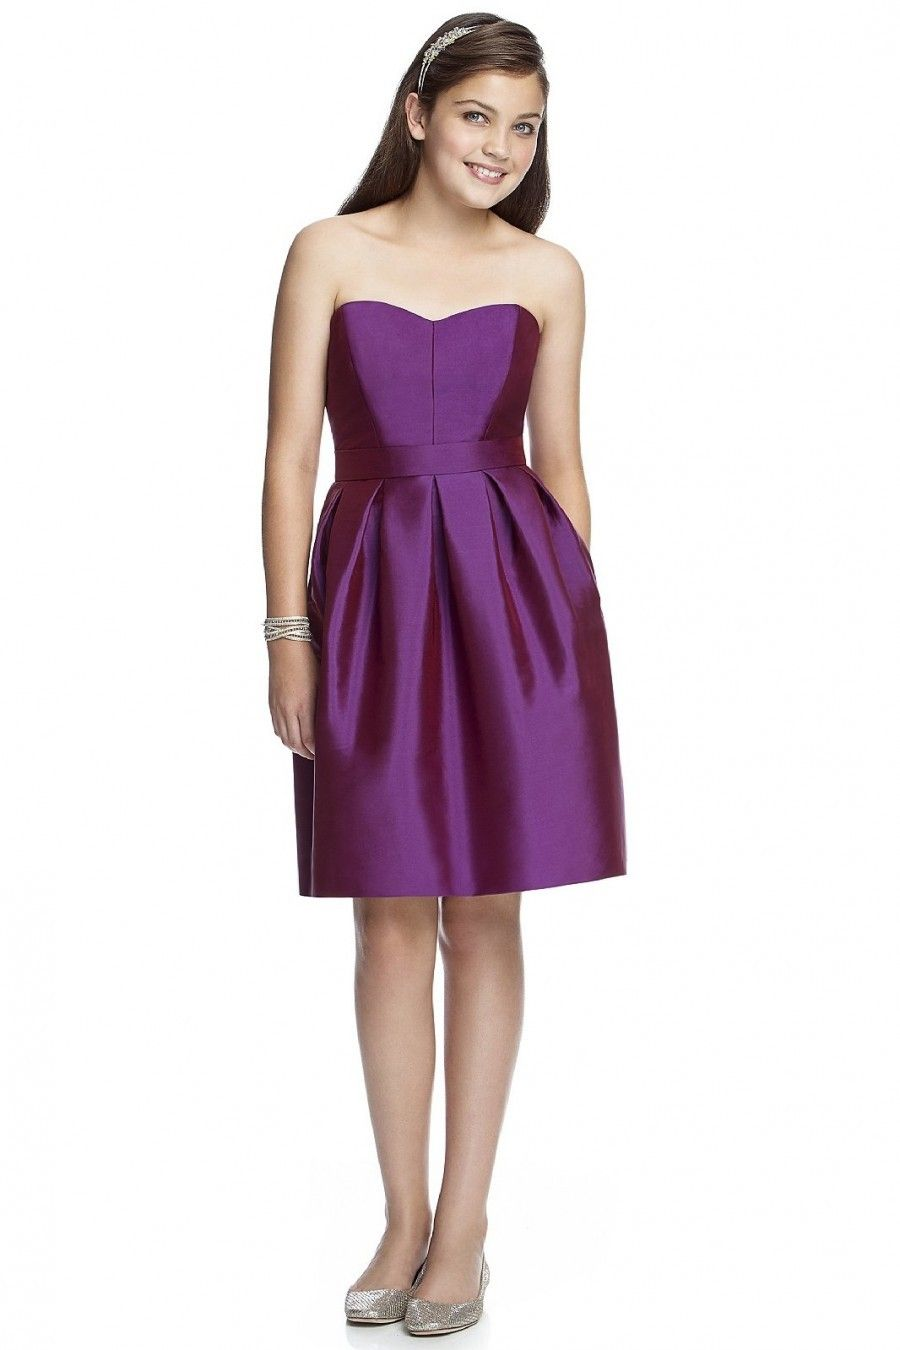 Dessy Bridesmaids Dress Style JR522 $270 Bridesmaids | wedding ...